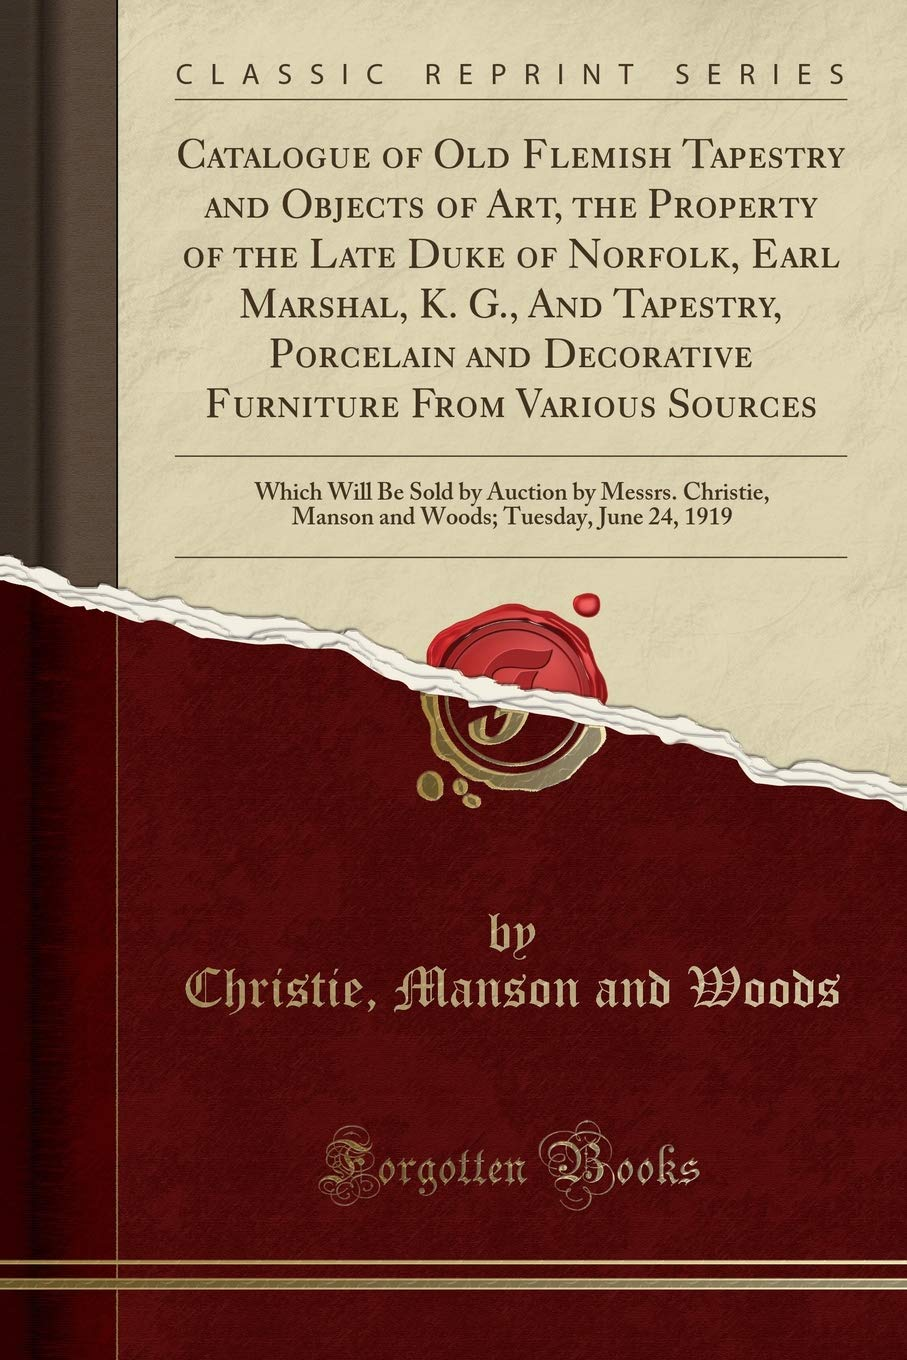 Catalogue of Old Flemish Tapestry and Objects of Art, the Property of the Late Duke of Norfolk, Earl Marshal, K. G., And Tapestry, Porcelain and ... Auction by Messrs. Christie, Manson and Woods ebook